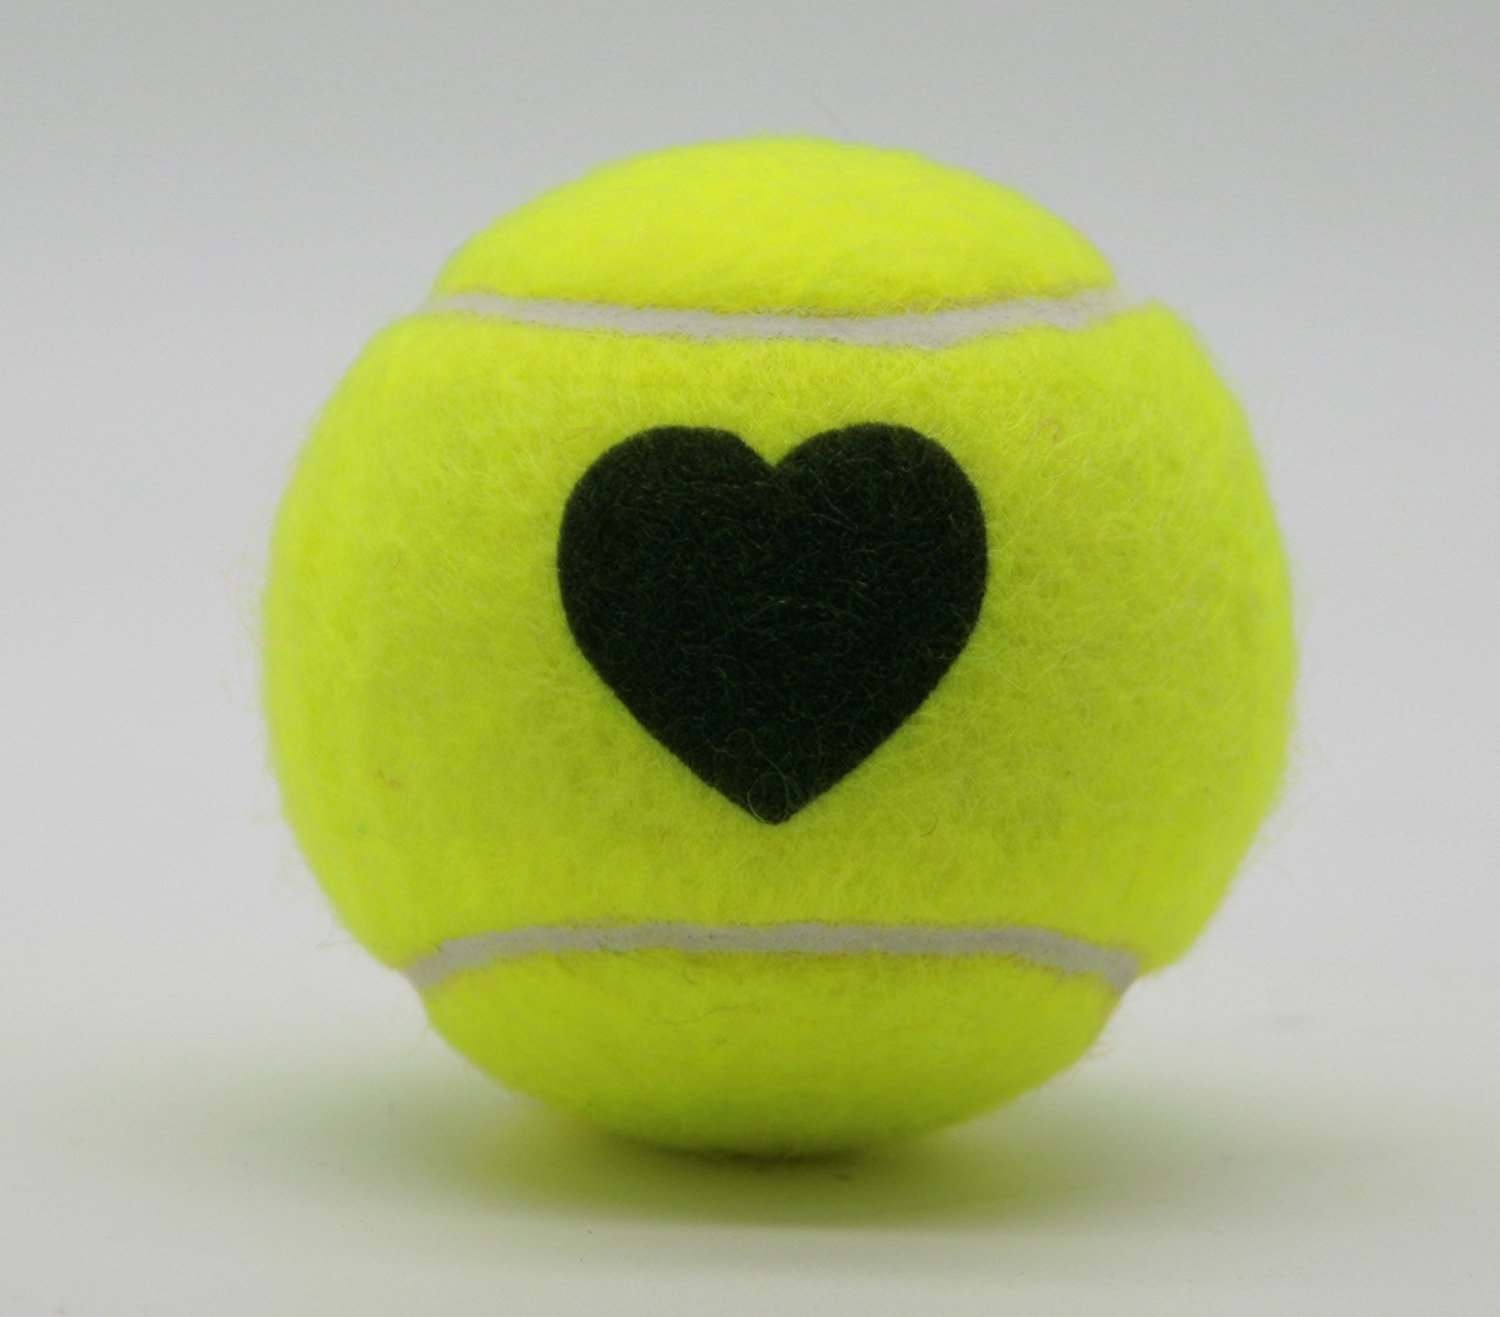 Price's Heart Motif Type 2 Tennis Balls Made in the UK (1 x 3 Ball Tube) Yellow, pressureless, durable and long lasting.